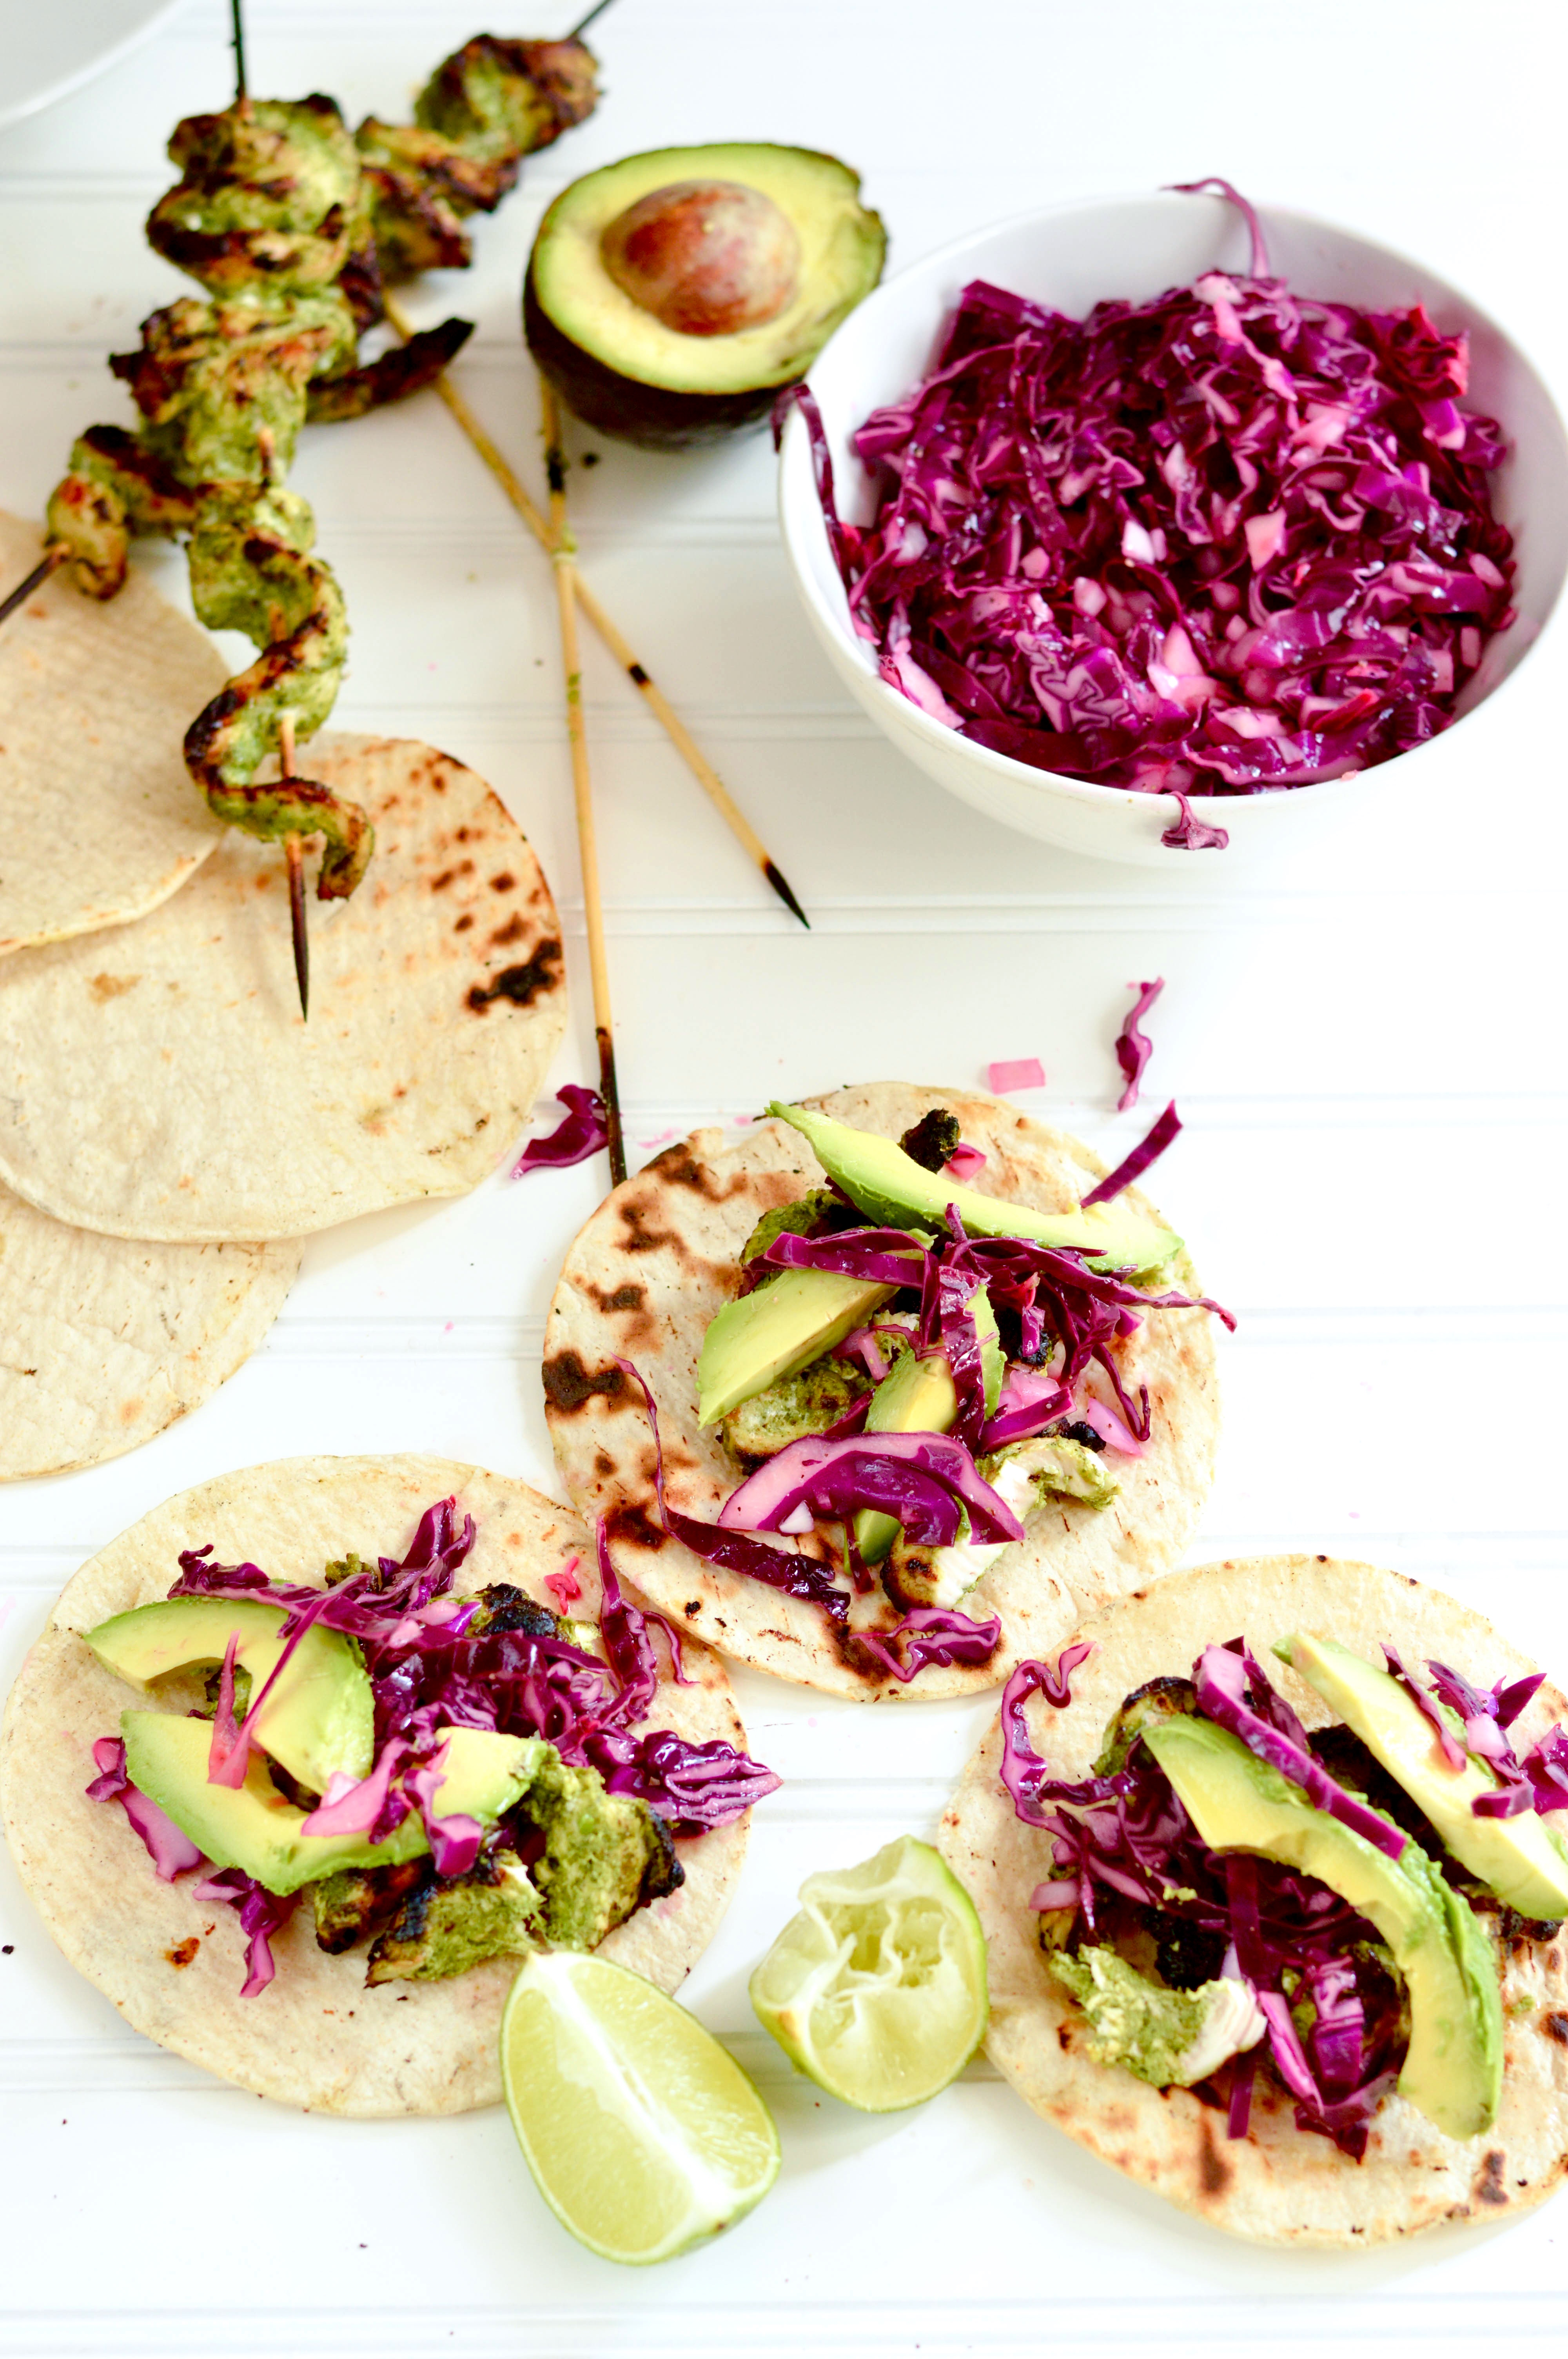 Grilled Chicken Tacos With Cilantro Pesto And Red Cabbage